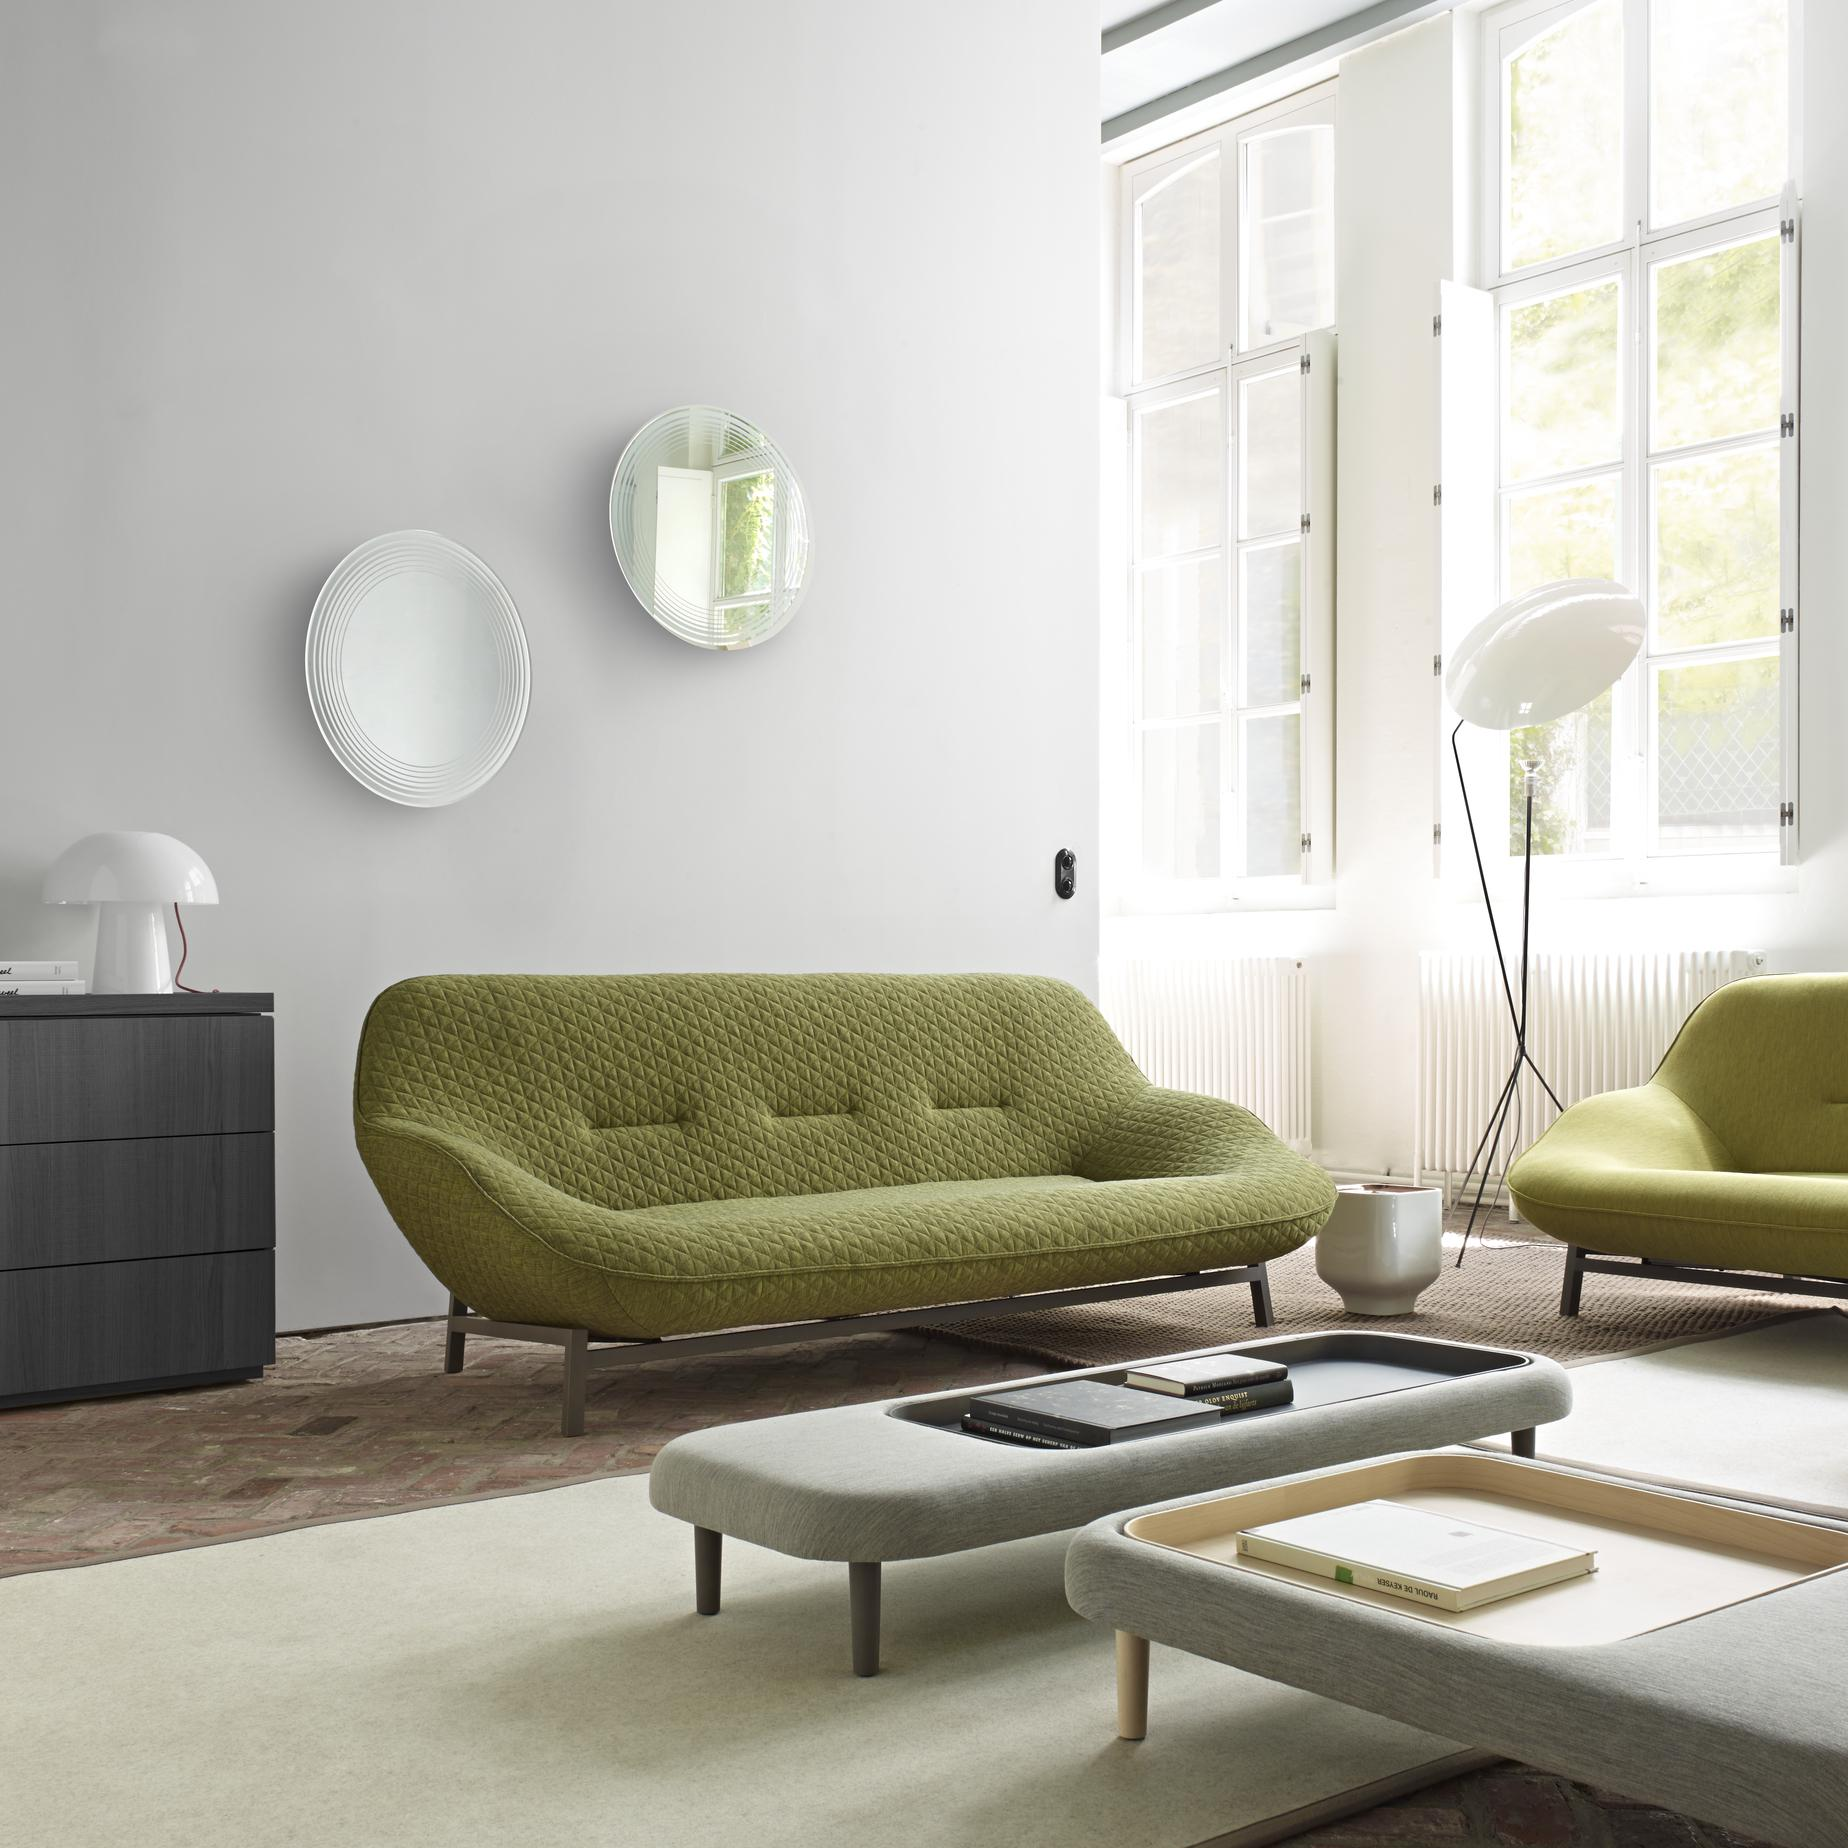 cosse sofas from designer philippe nigro ligne roset. Black Bedroom Furniture Sets. Home Design Ideas